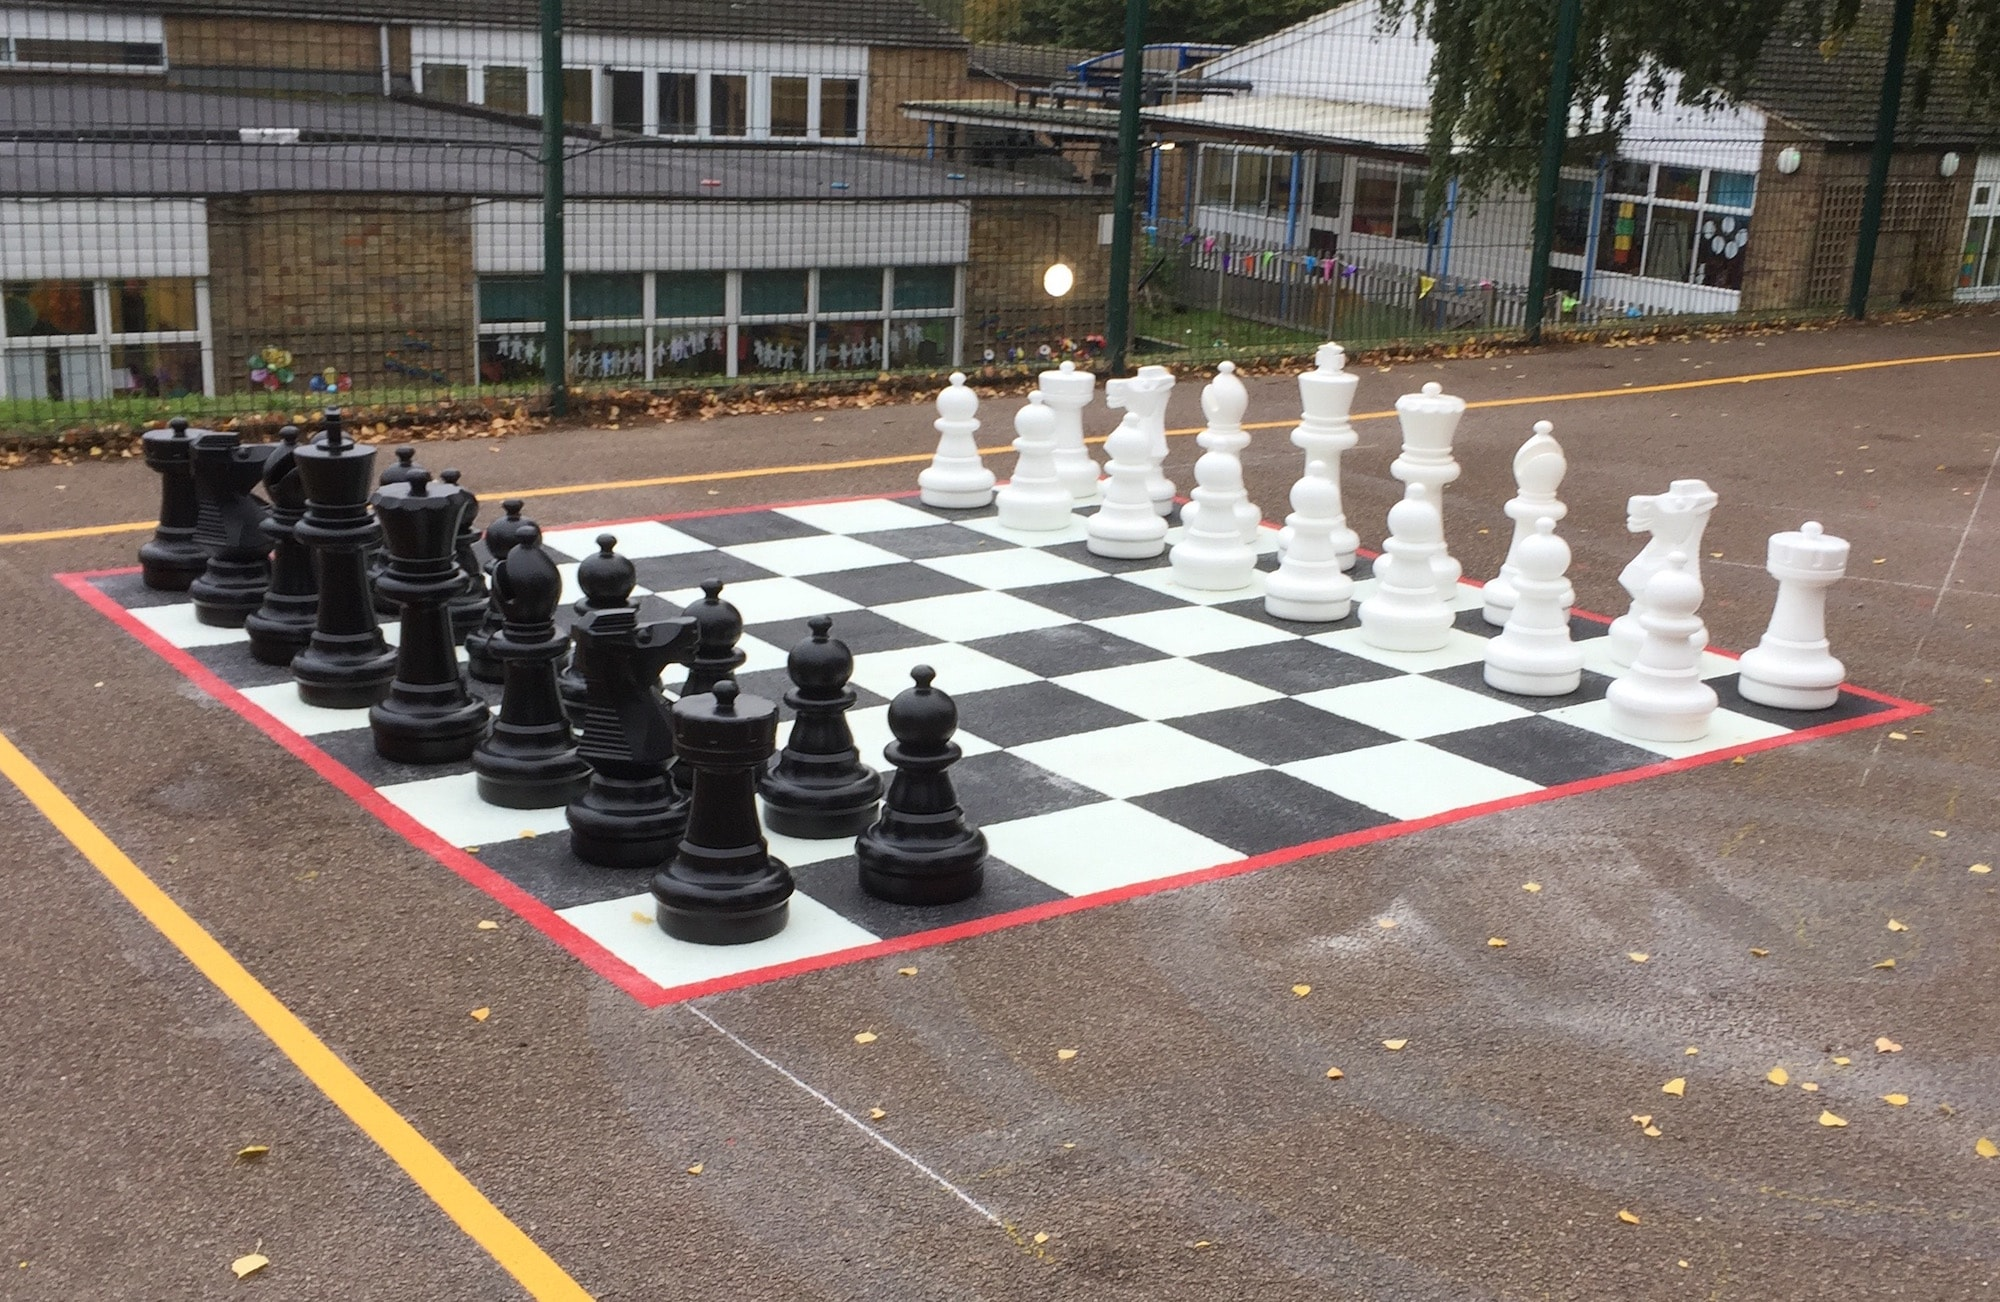 Giant Chess Set